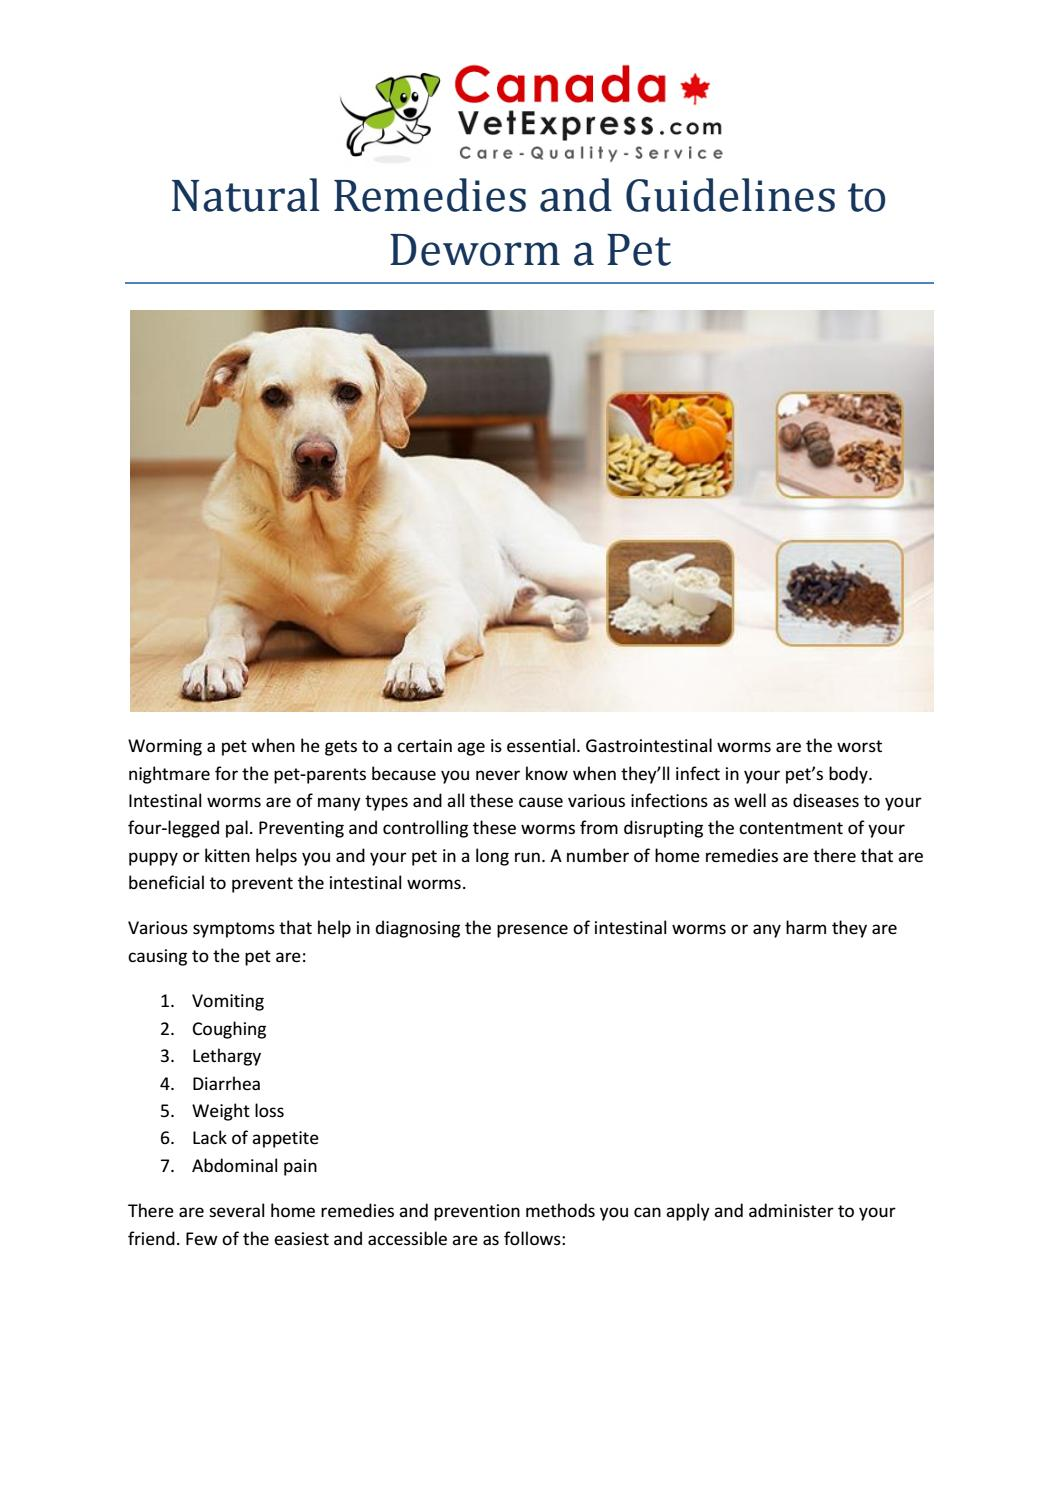 Natural Remedies And Guidelines To Deworm A Pet By Canadavetexpress